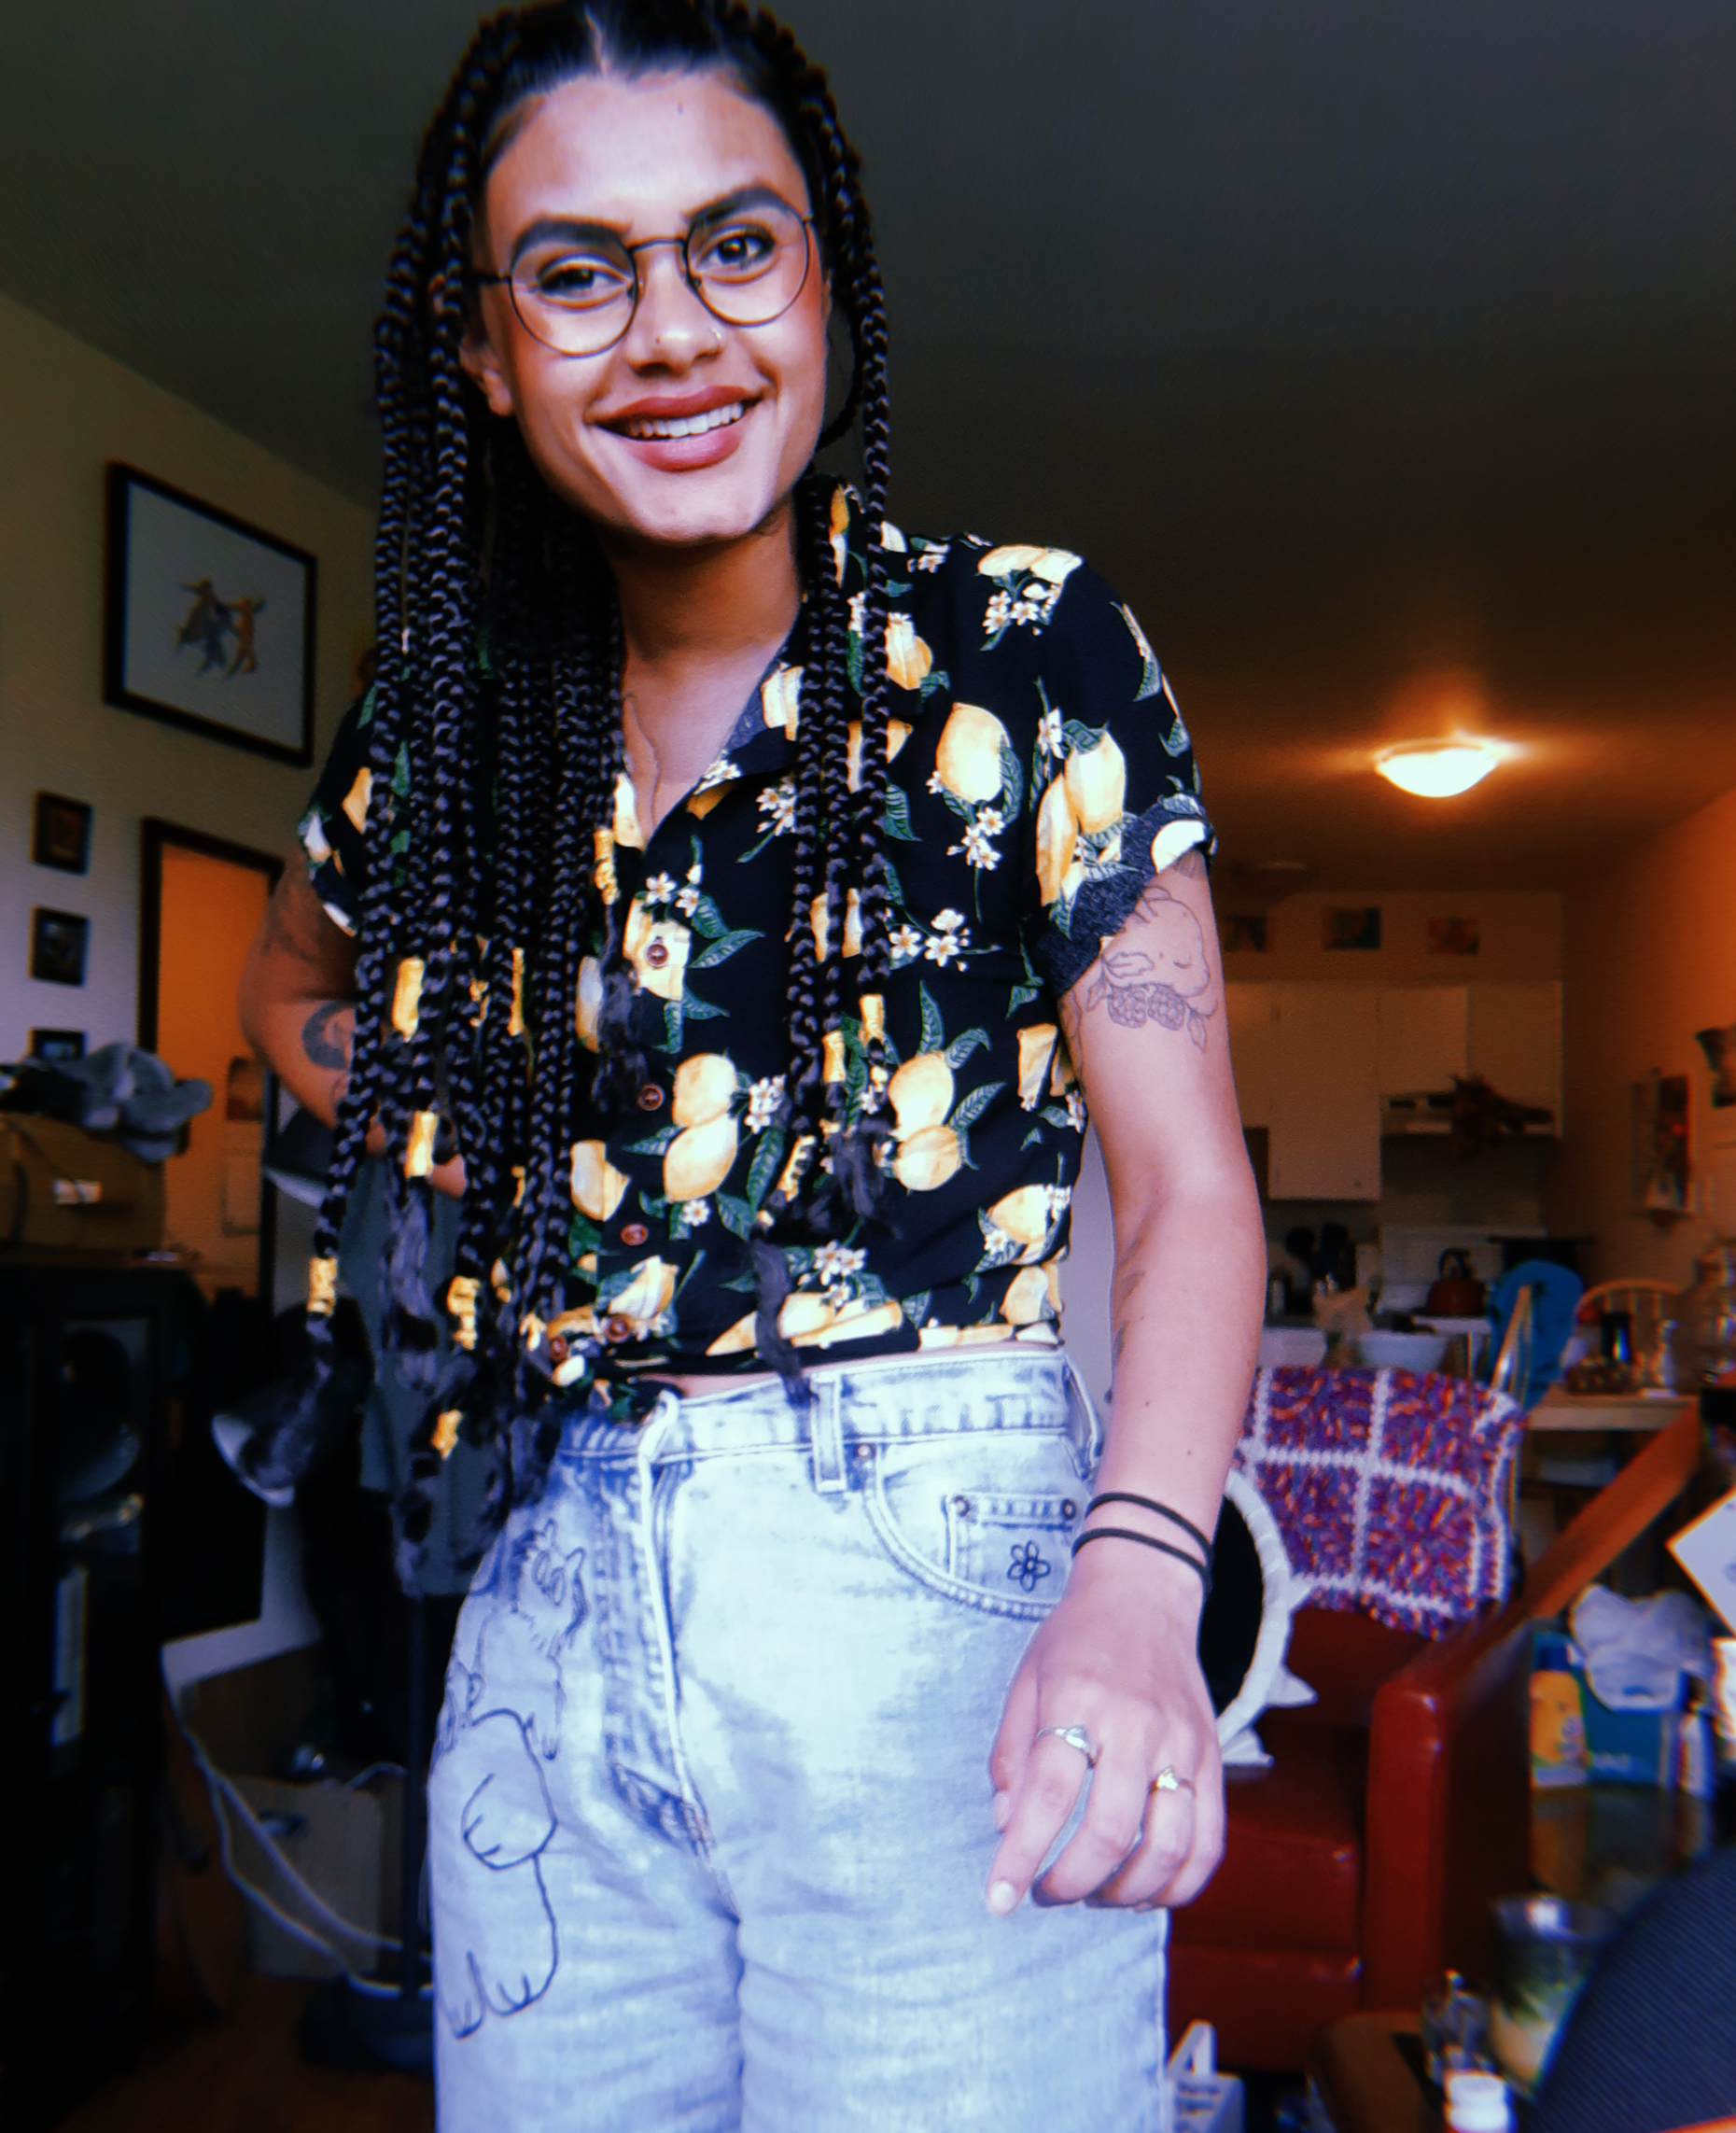 A picture of Zion Bull smiling and standing up in front of the camera, wearing jeans and a colorful blouse.